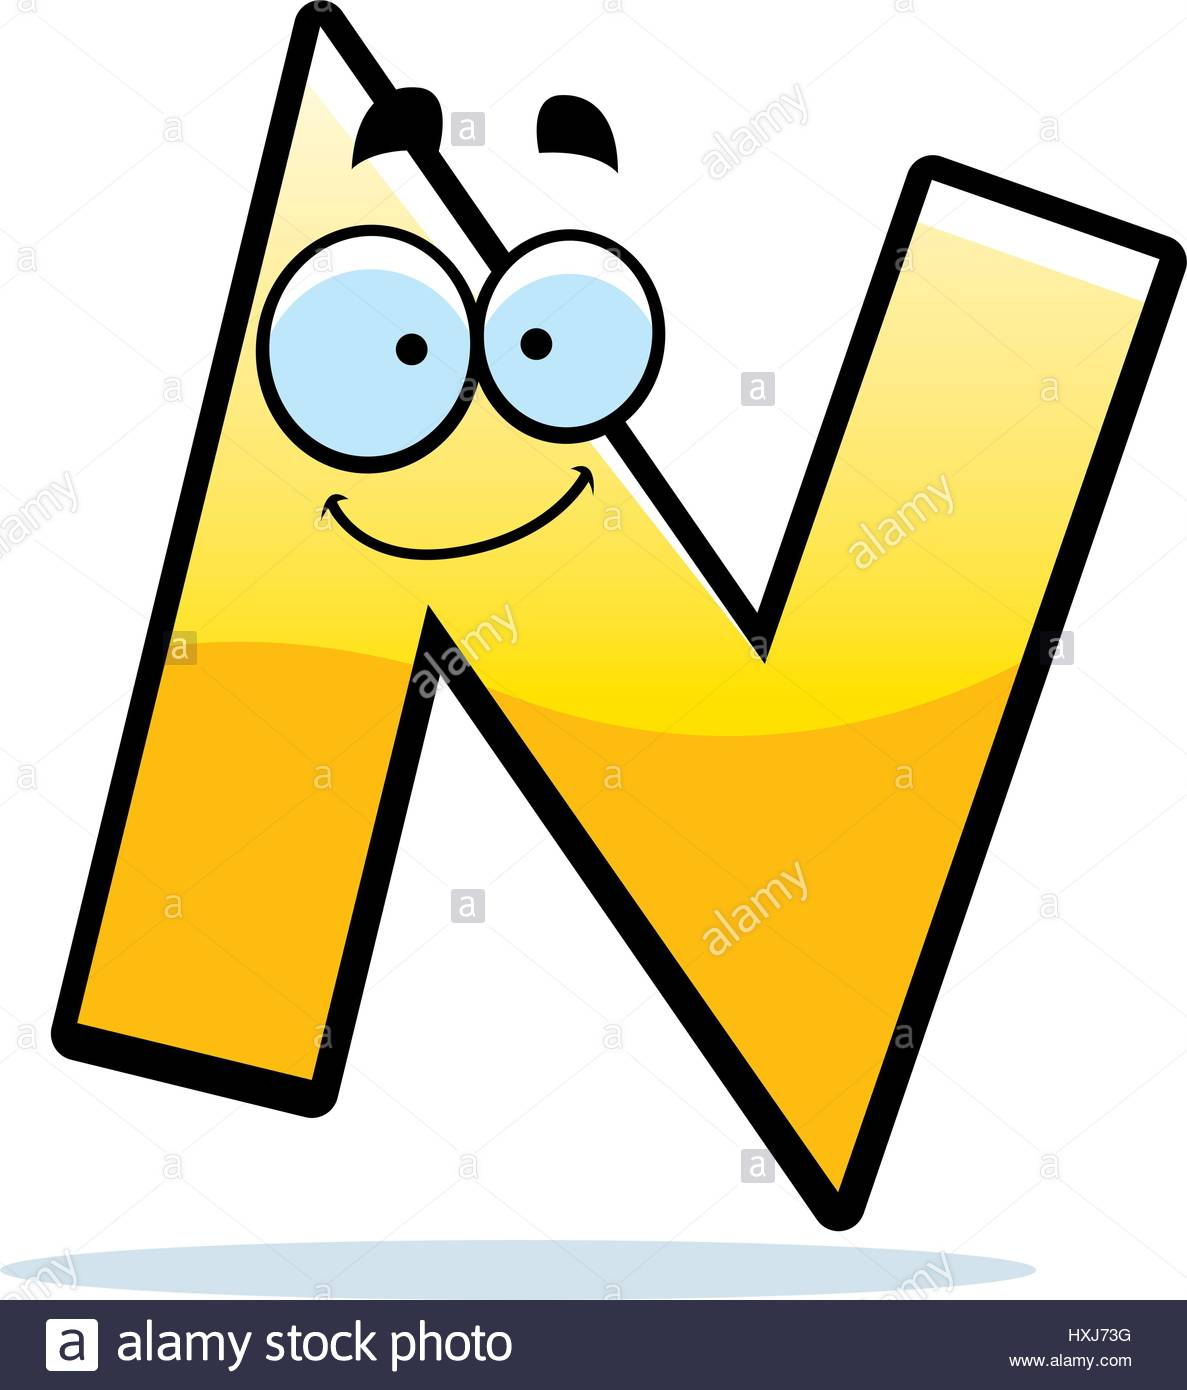 M Letter Clipart At GetdrawingsCom  Free For Personal Use M Letter